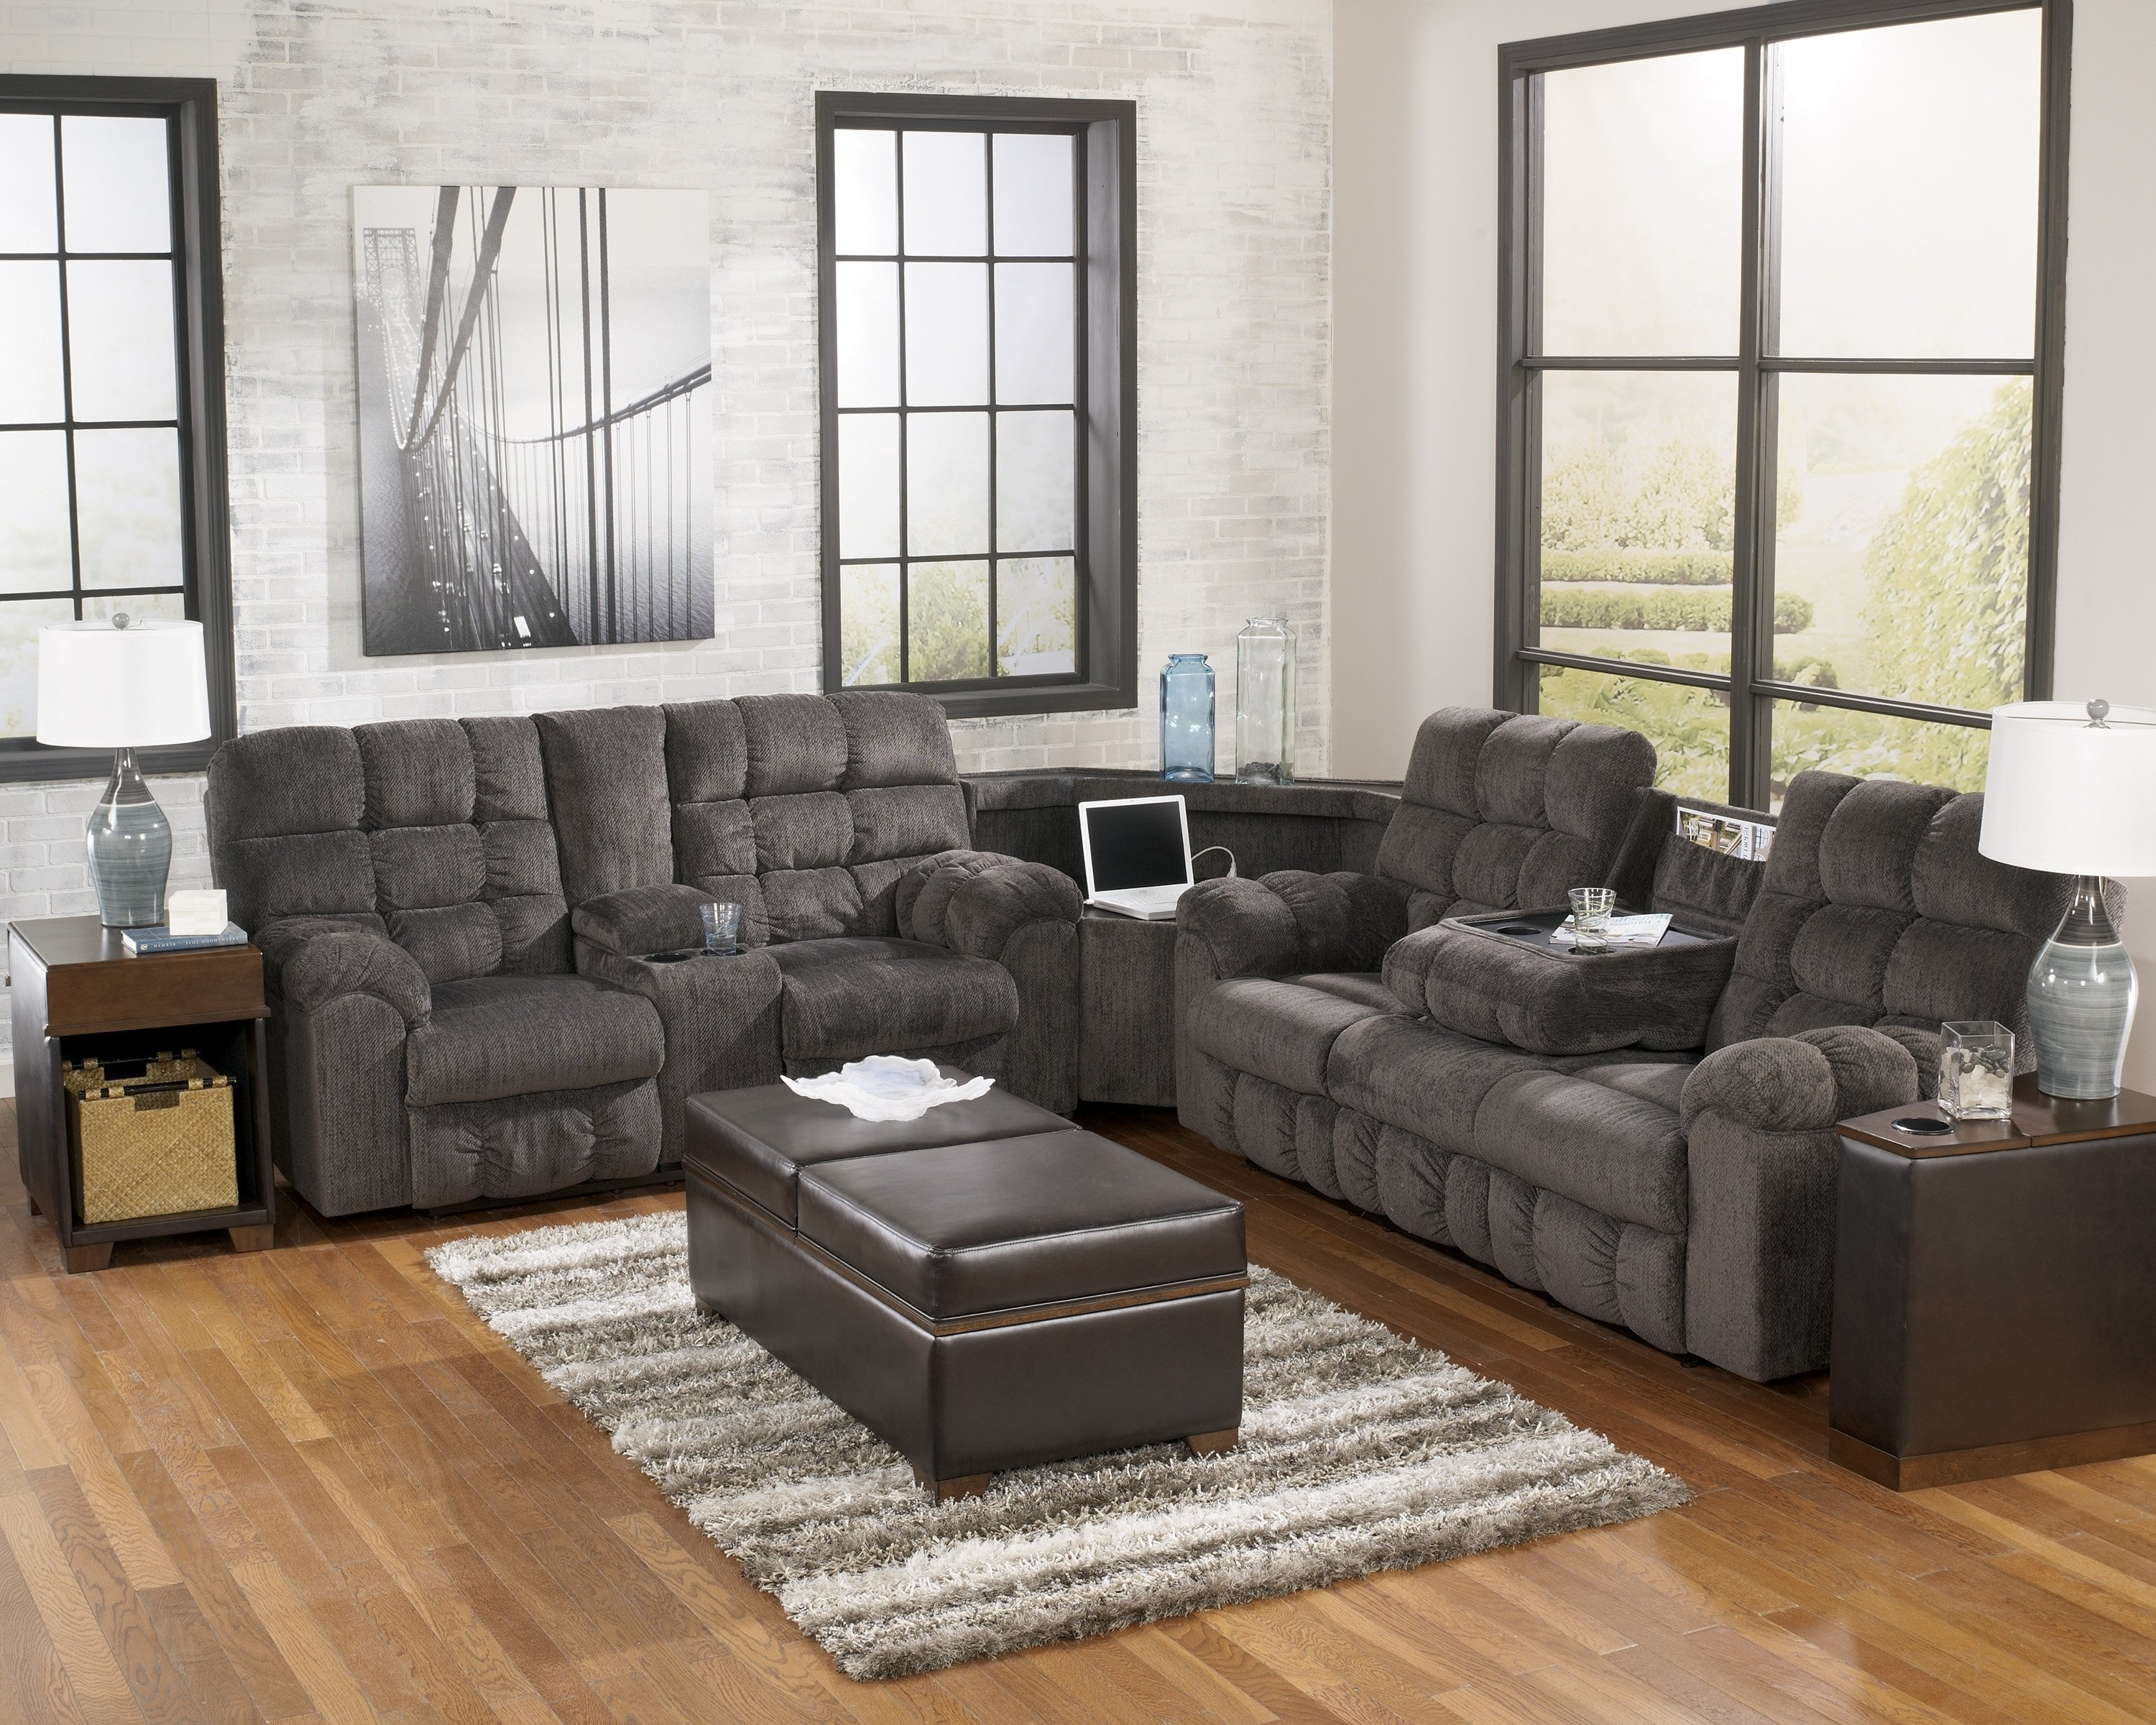 2018 Sofas Center Sectional Sofas Ashley Furniture Excellent Faux For Pertaining To Sectional Sofas At Ashley Furniture (View 1 of 15)